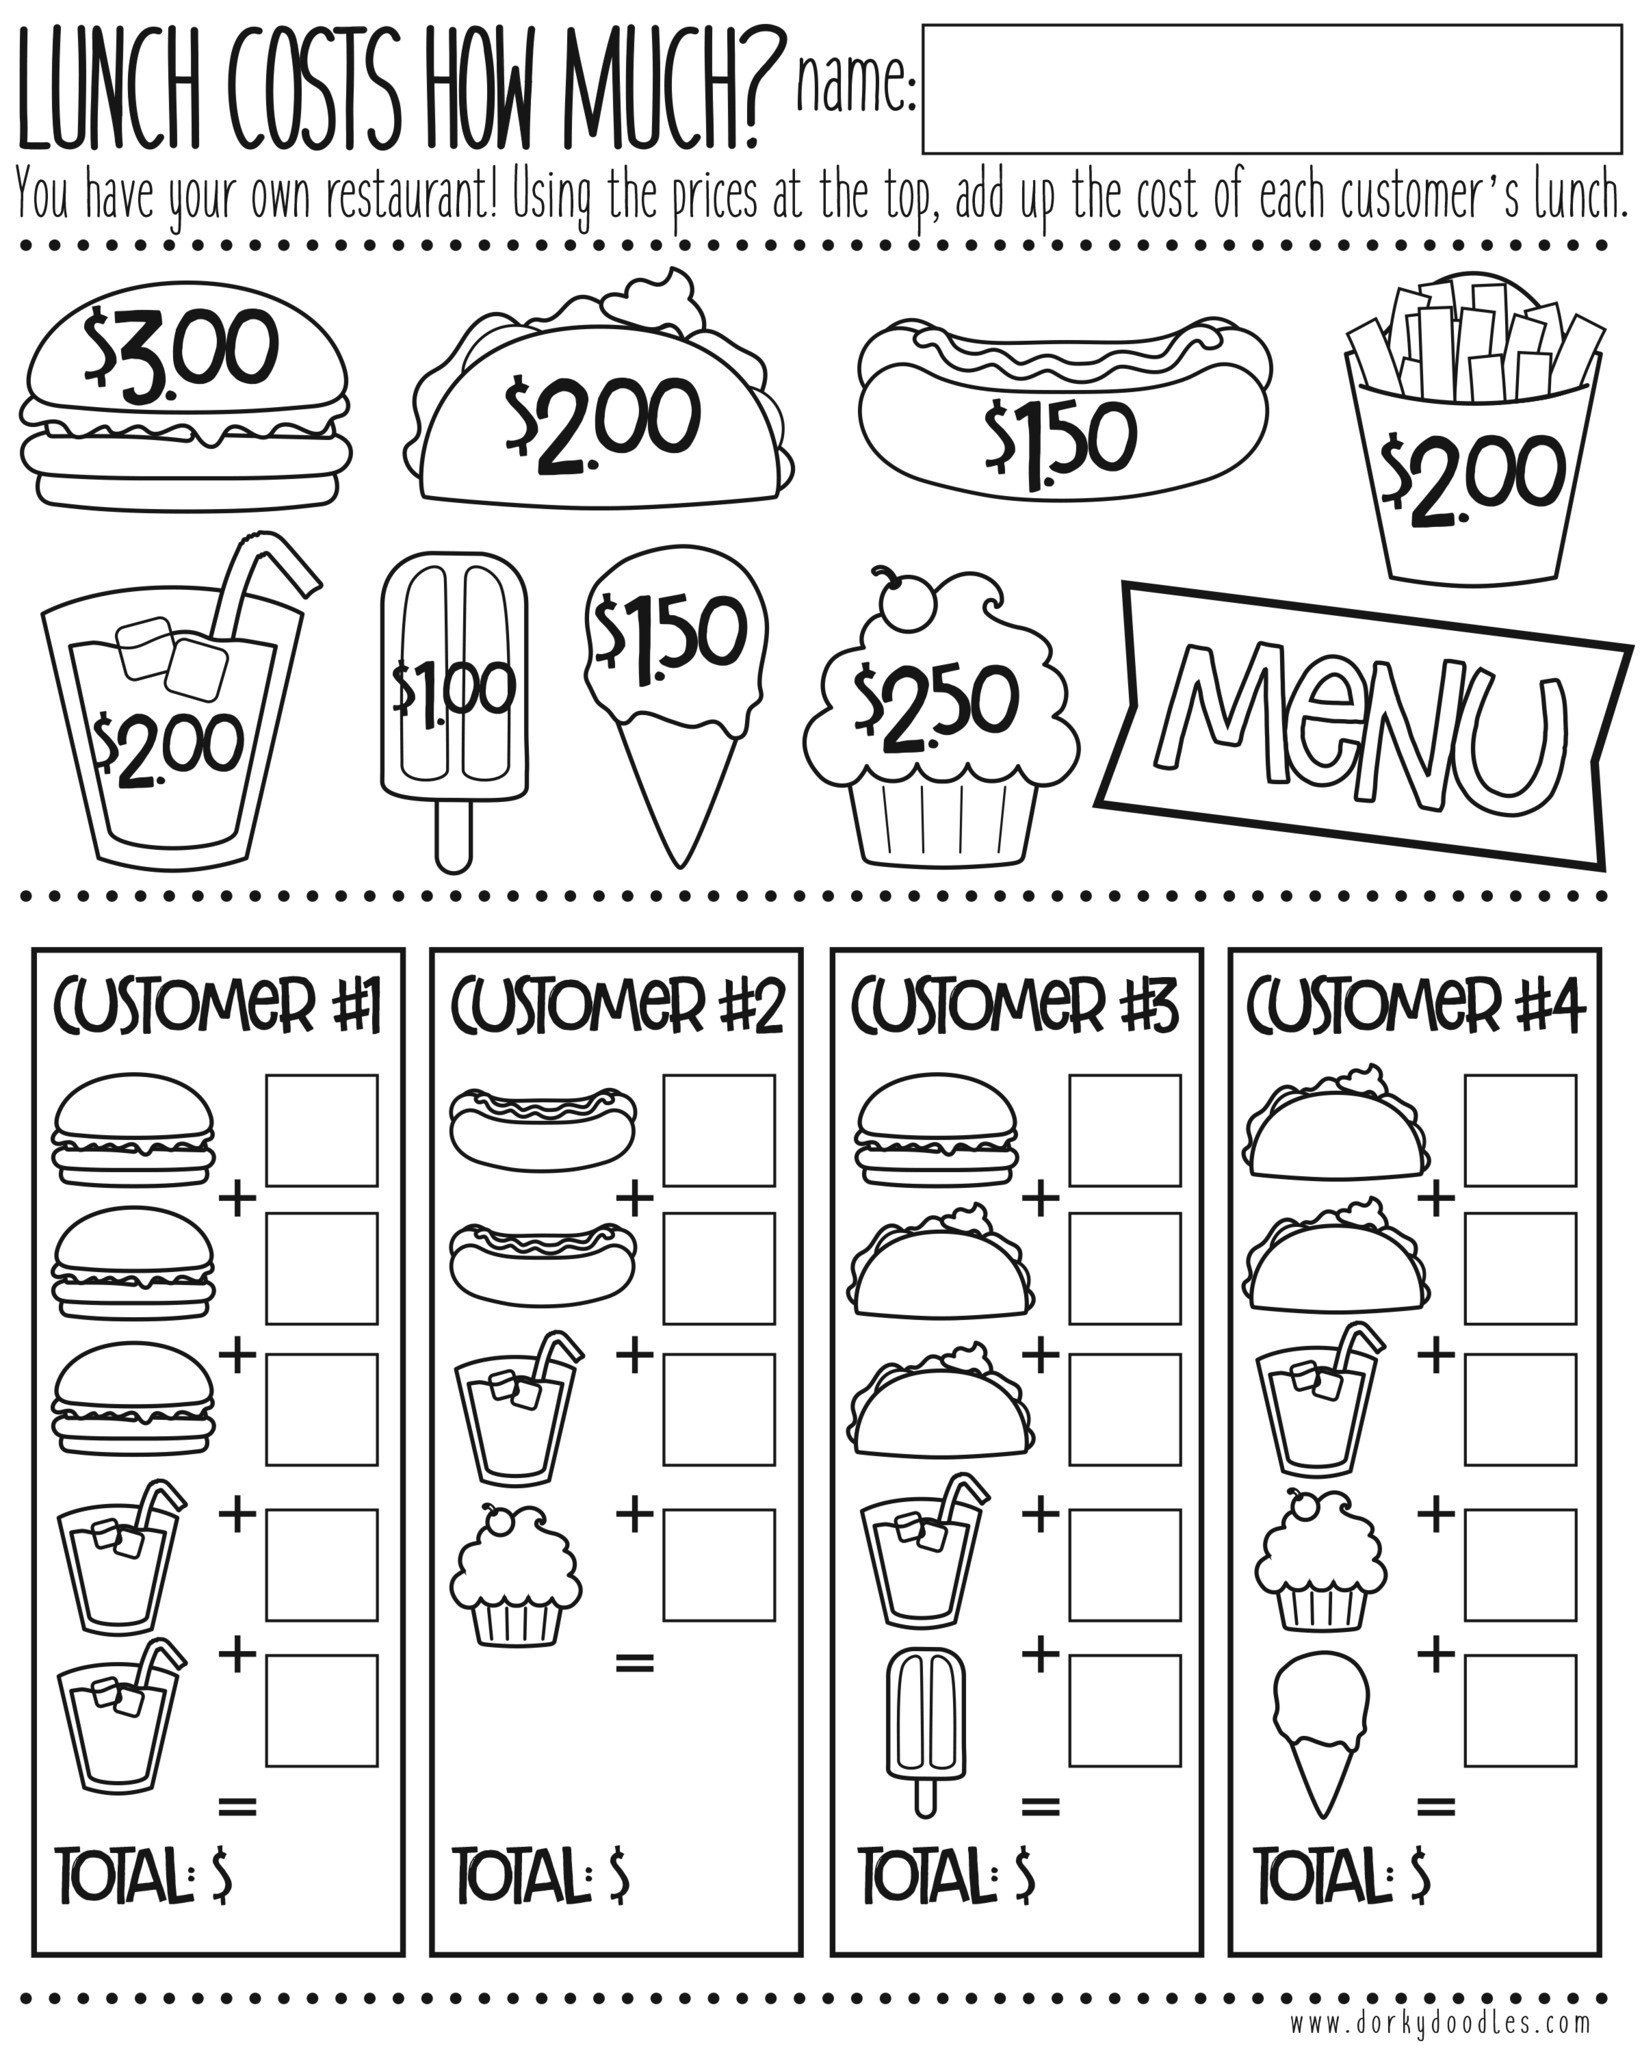 small resolution of Money Math Practice - How Much Does Lunch Cost?   Money math